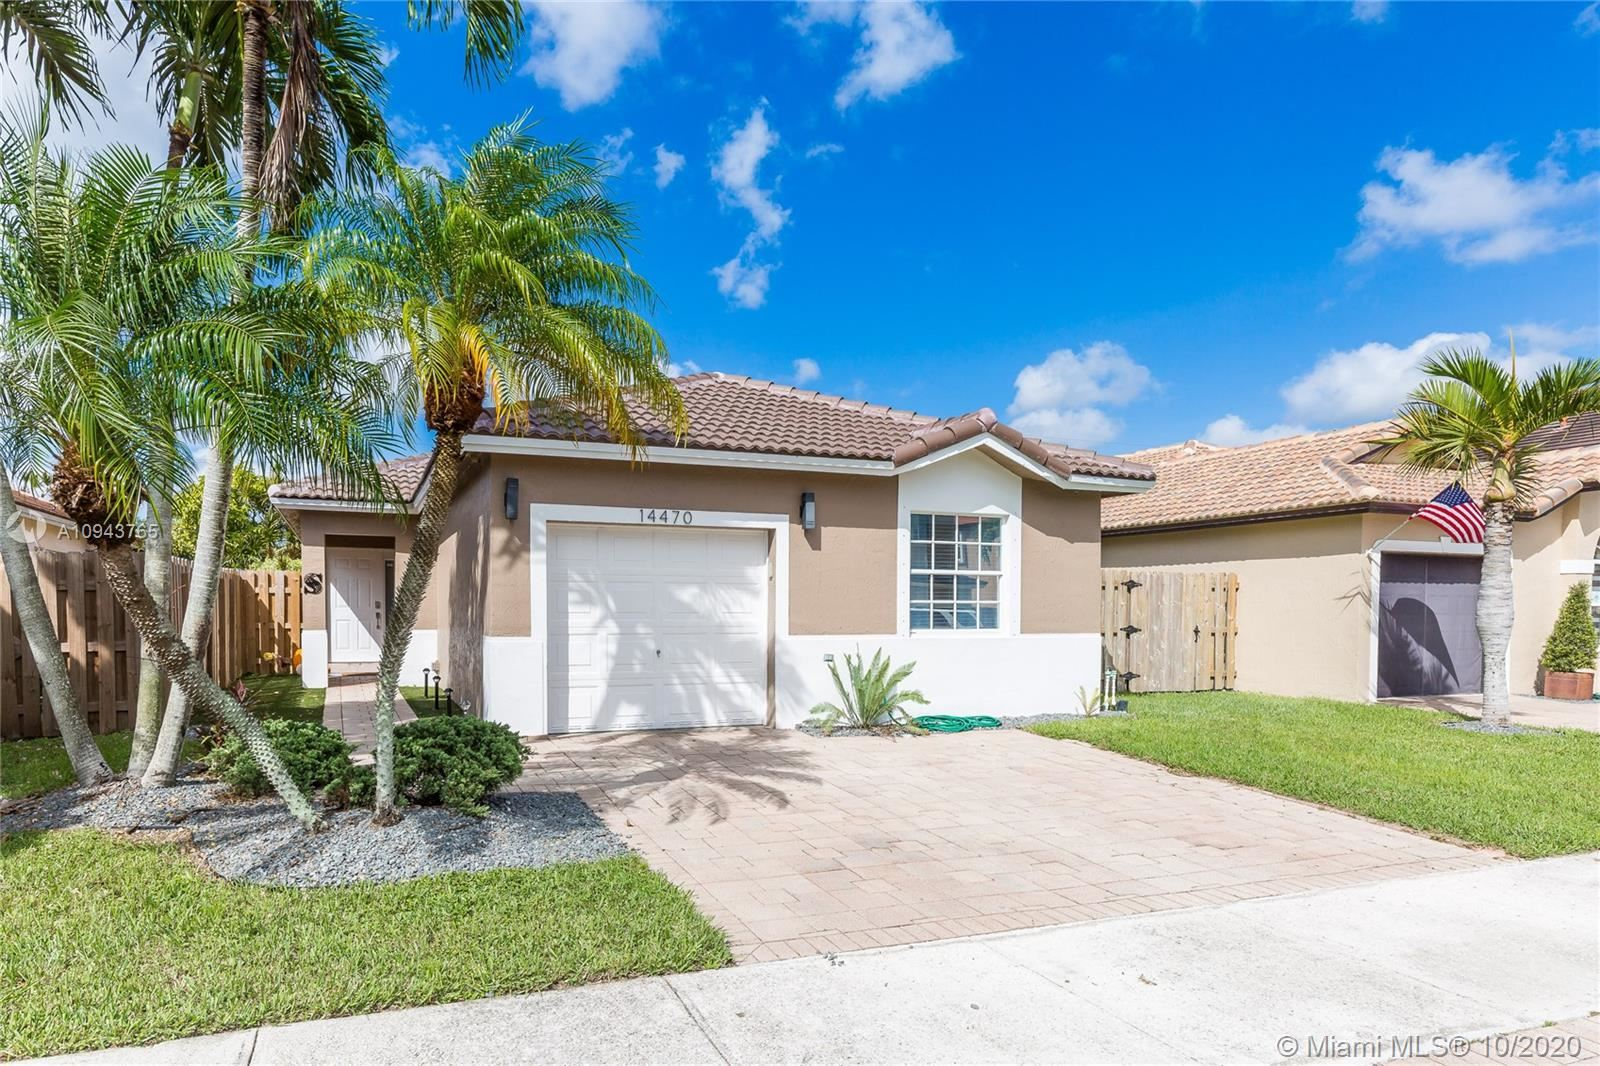 14470 SW 156th Ave, Miami, FL 33196 - #: A10943765